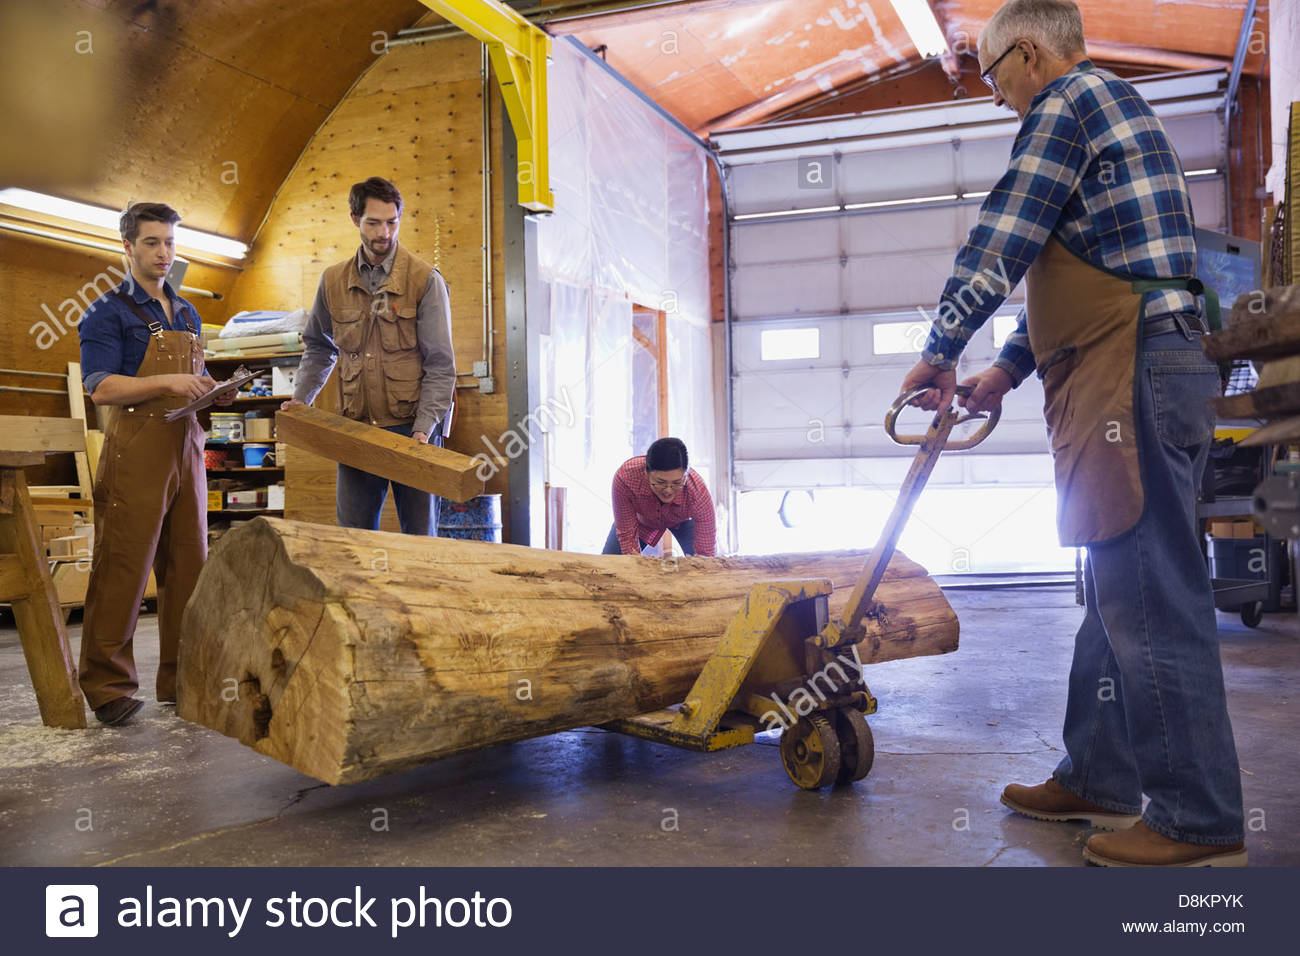 Woodworkers moving a large log in workshop - Stock Image